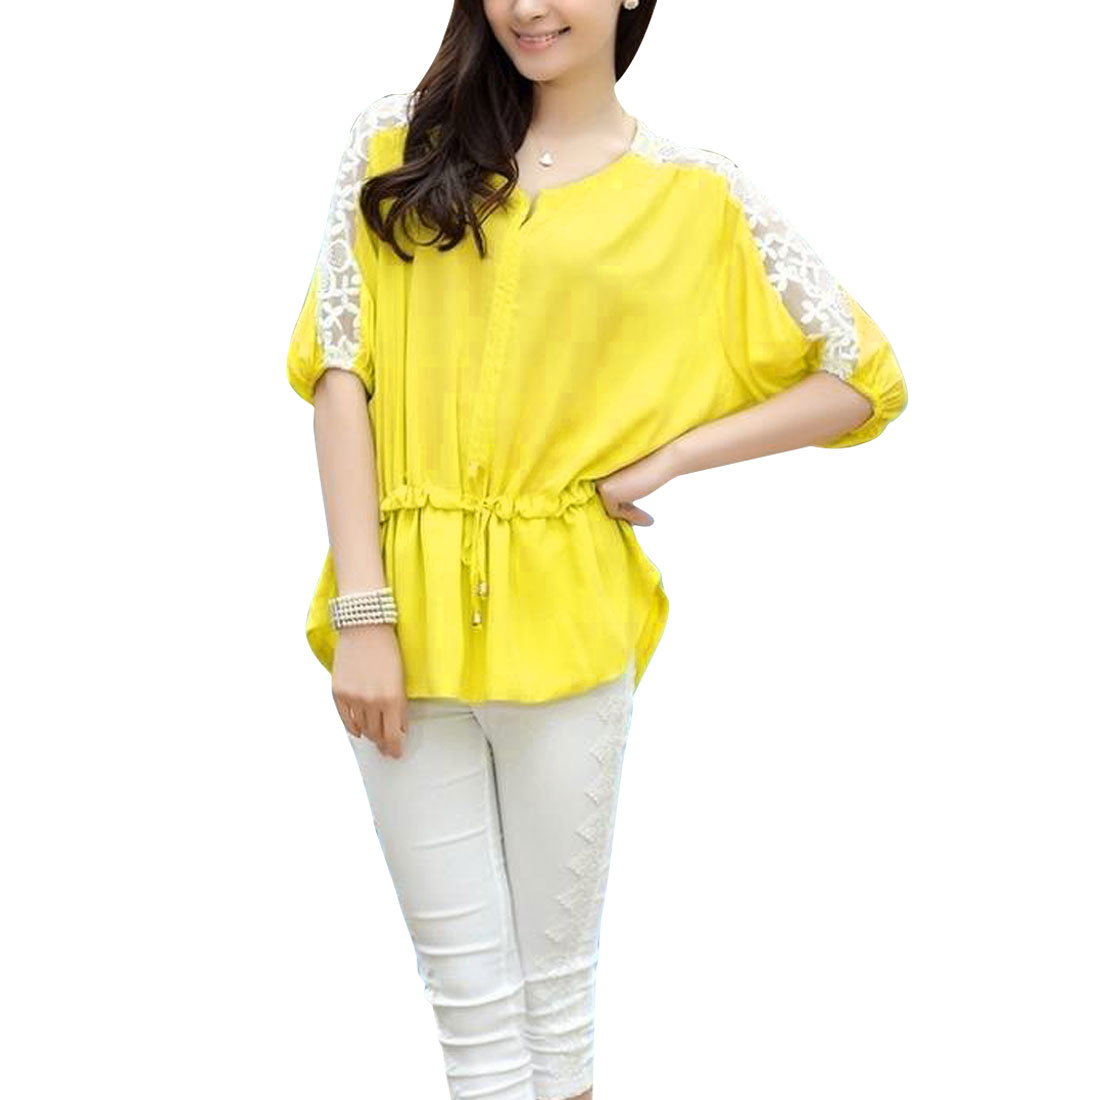 Women's Split Neck Panel Semi-sheer Sleeve Elastic Waist Yellow Chiffon Top S